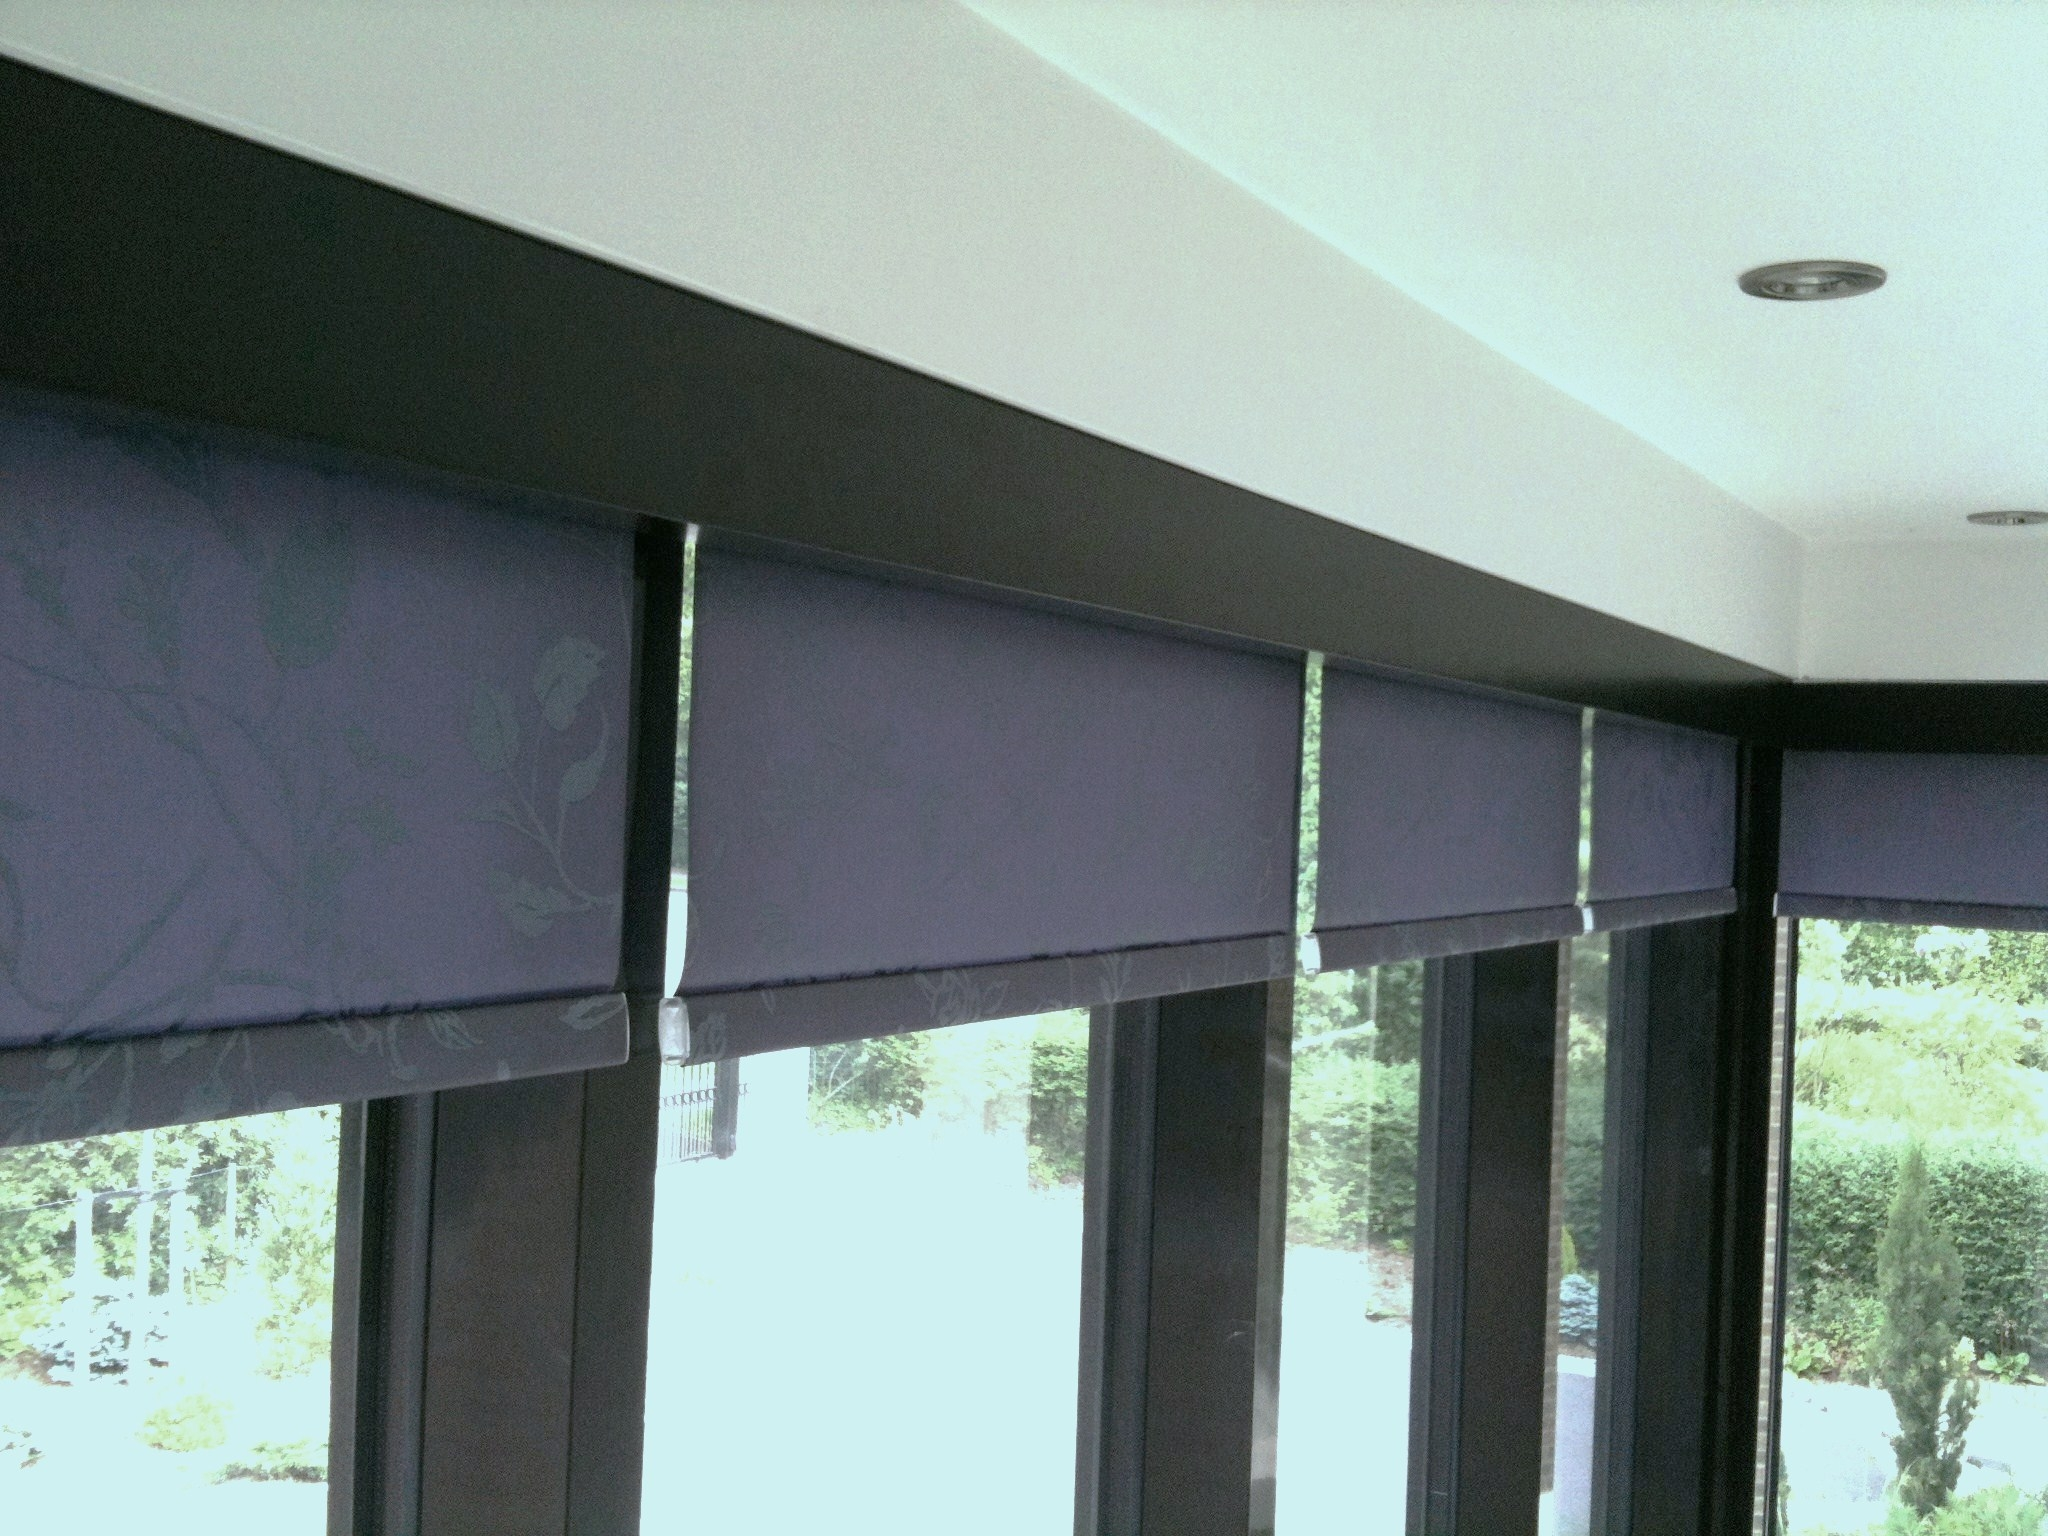 Office Blinds To Hide The Roller Blinds And To Match The Within Roman Blinds Black (View 10 of 15)